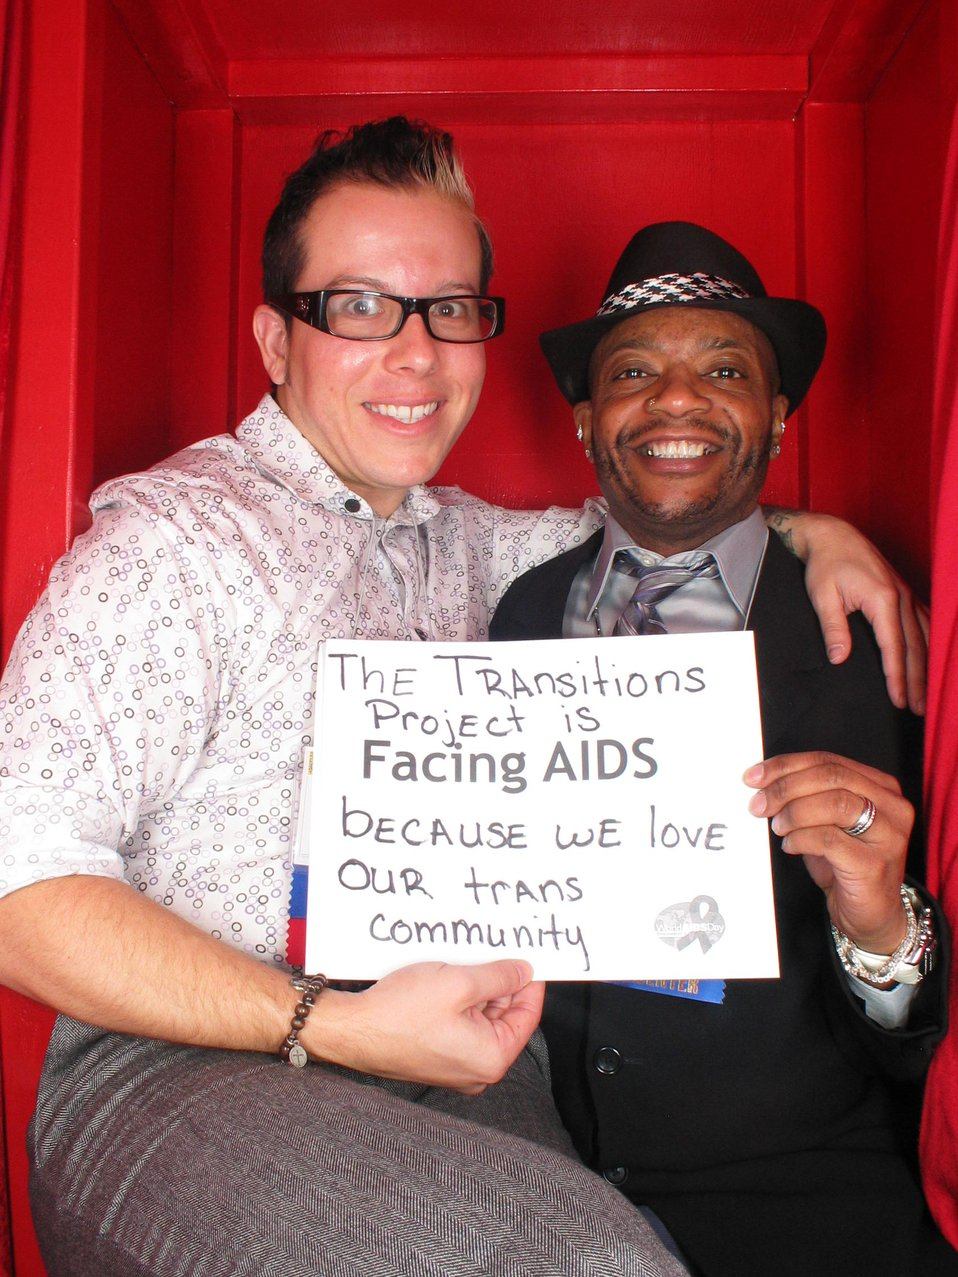 The Transition Project is Facing AIDS  because we love our trans community.